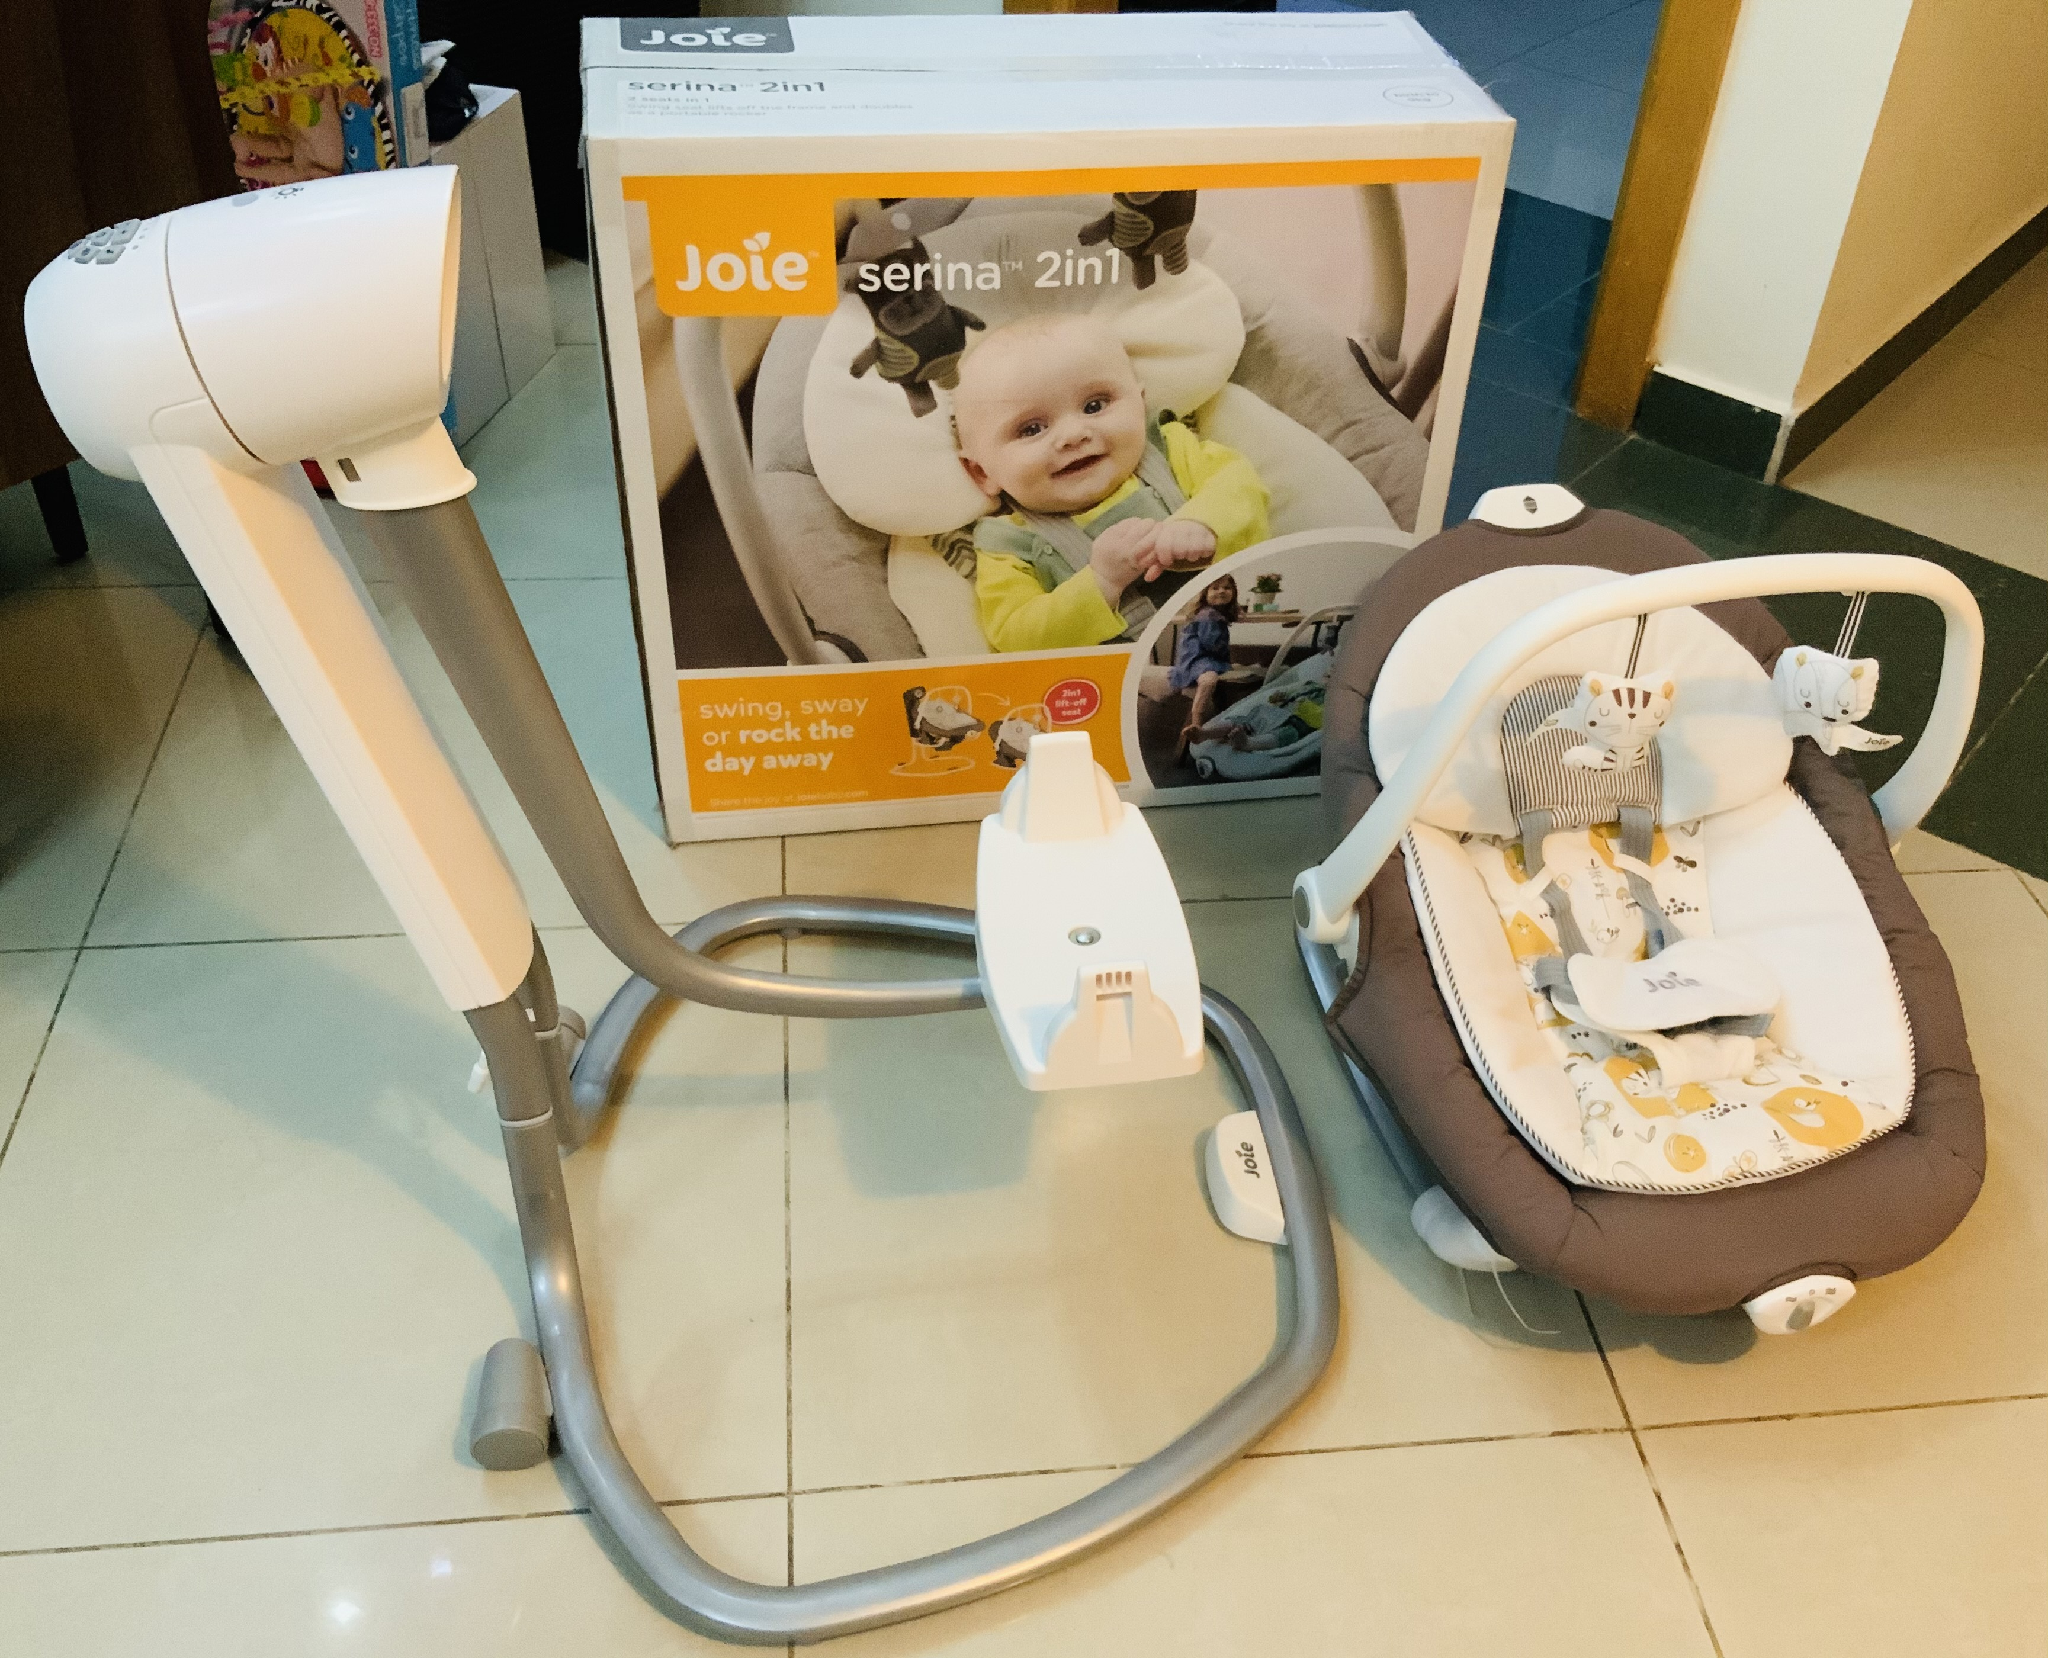 Almost unused Joie Serina 2in1 baby electric swing